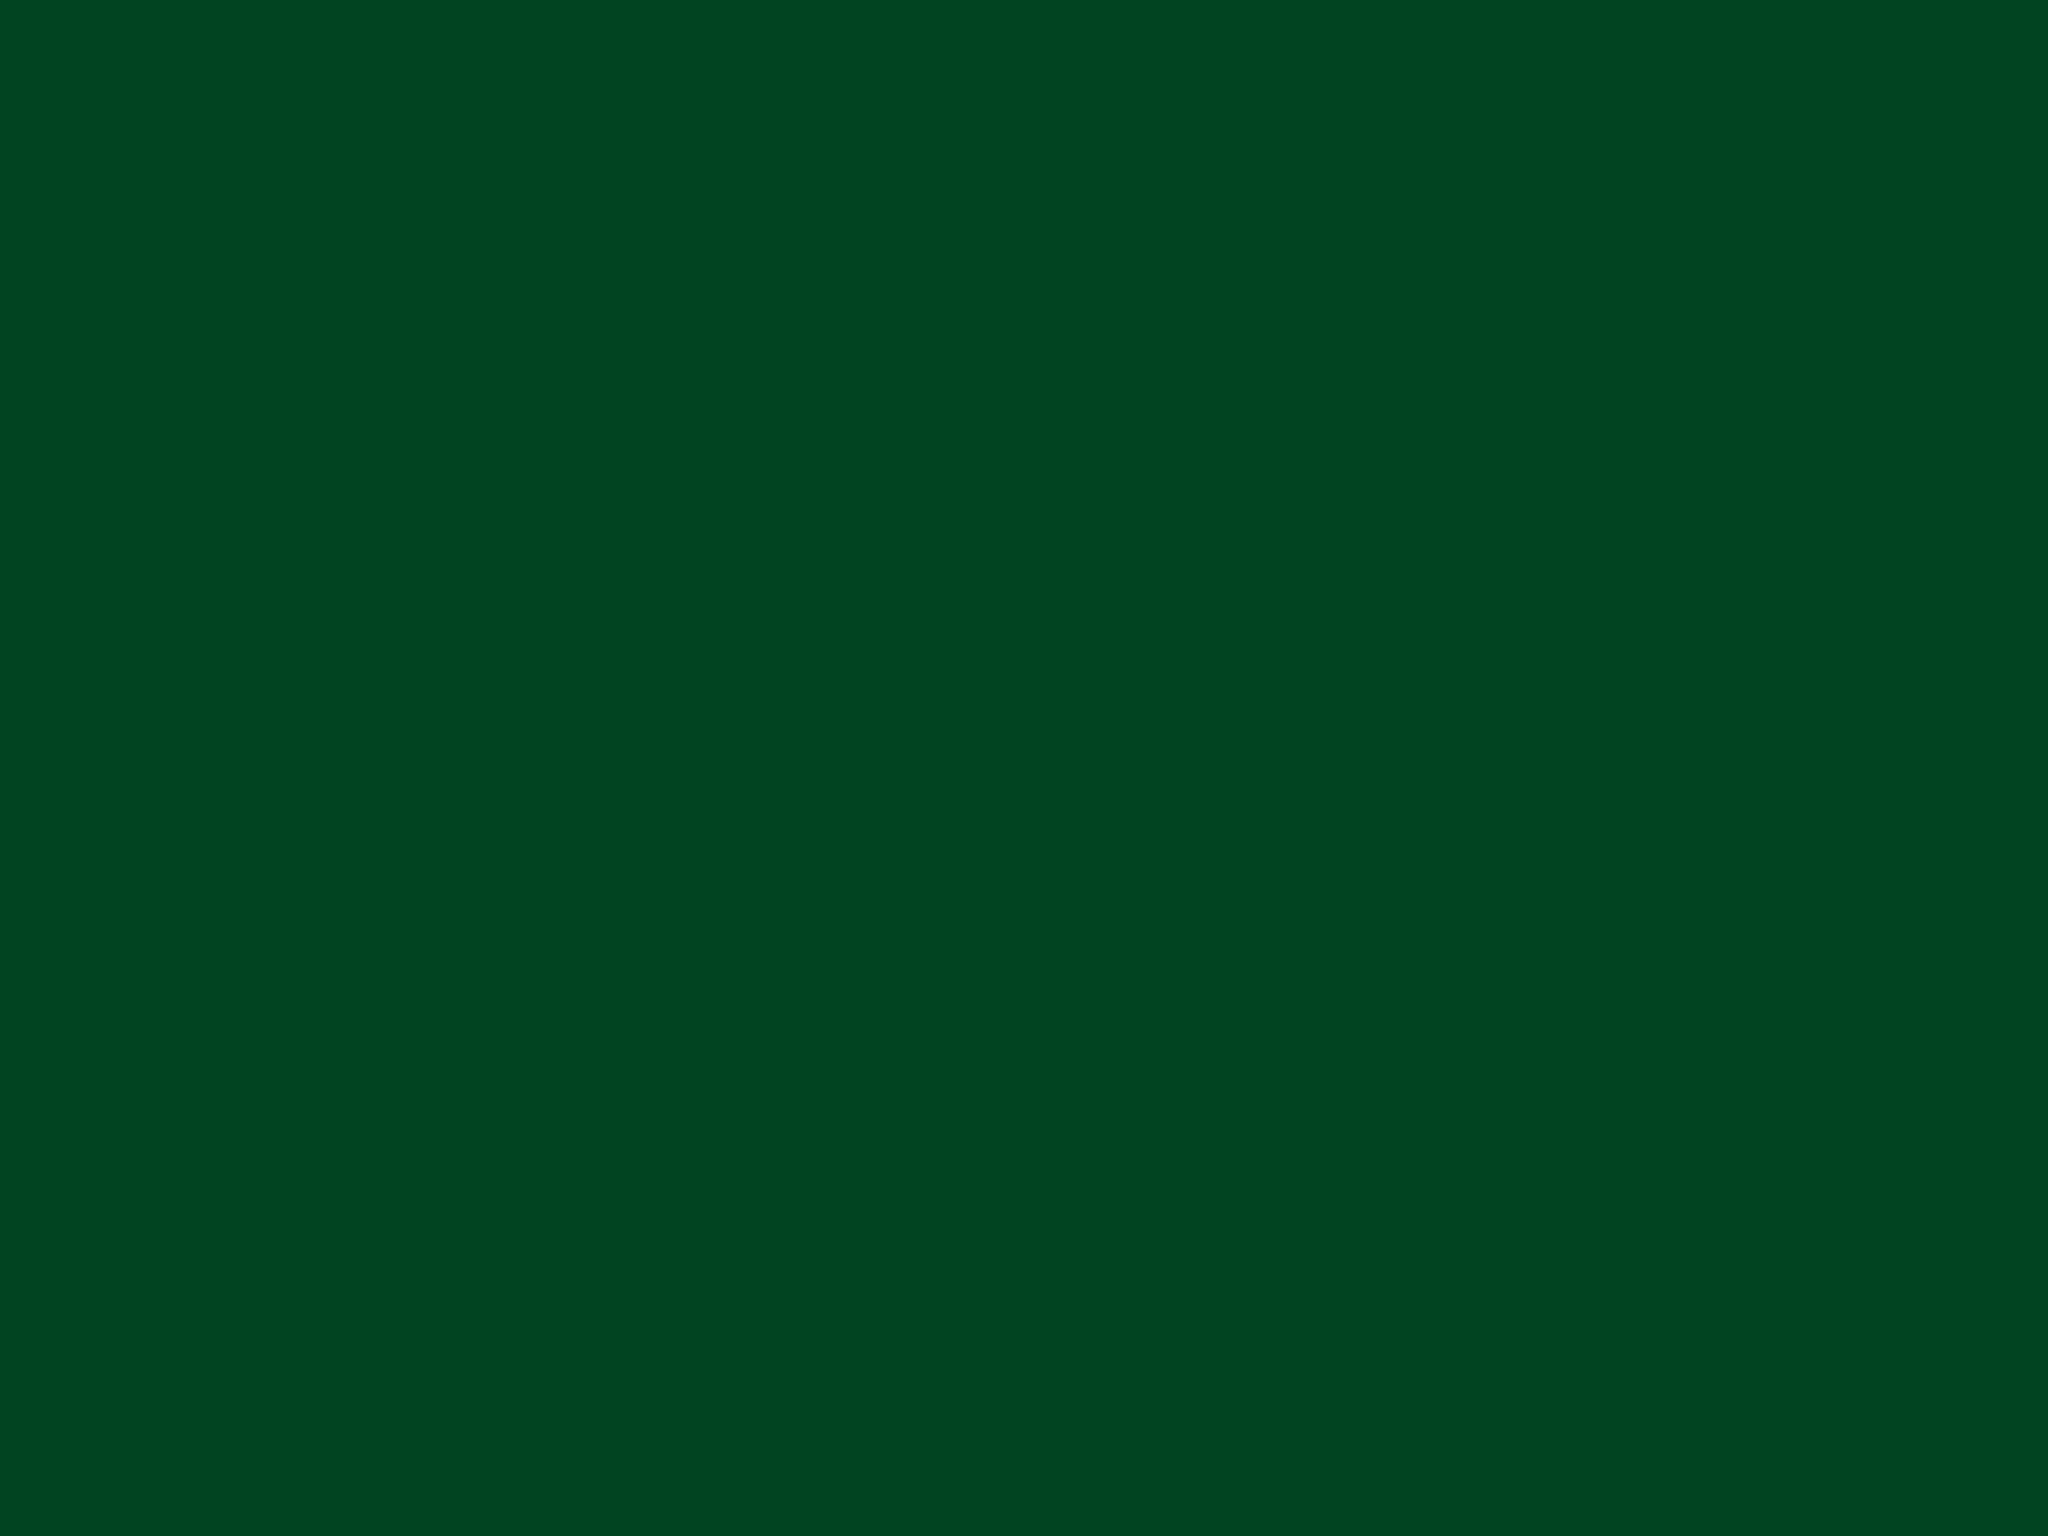 2048x1536 UP Forest Green Solid Color Background